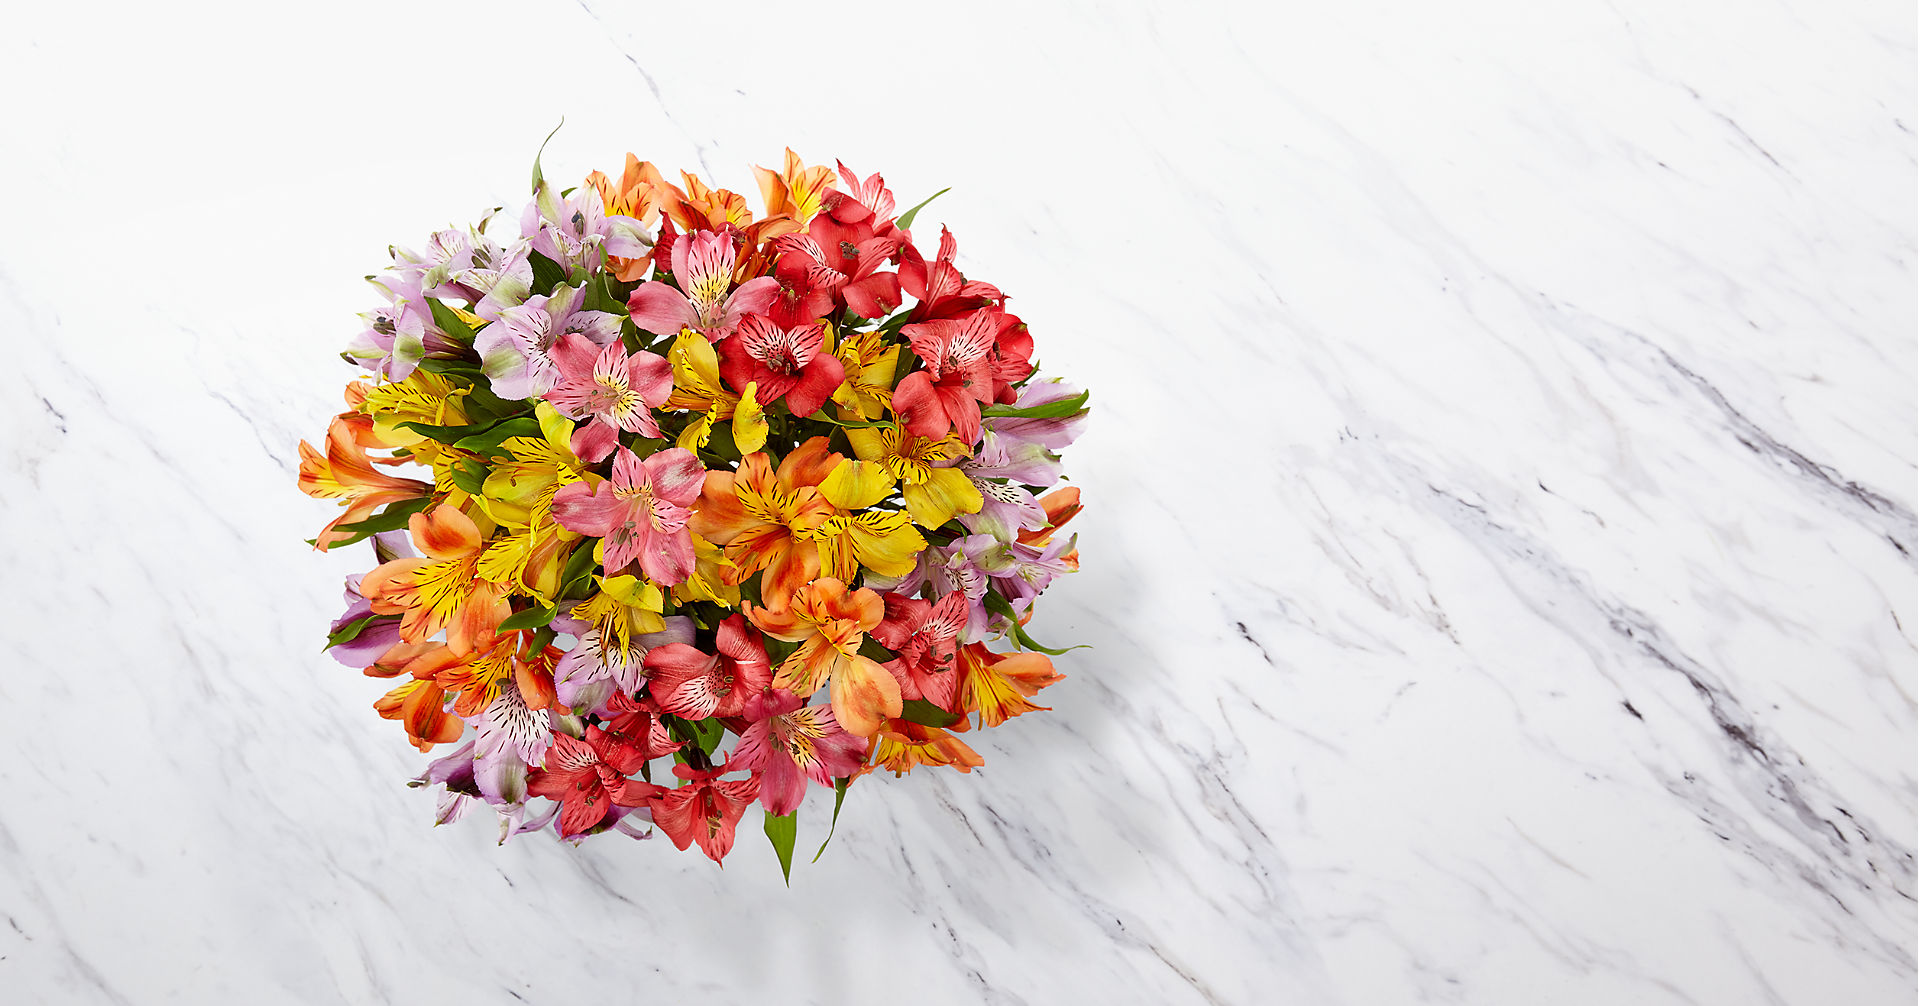 Rainbow Discovery Peruvian Lily Bouquet - 50 Blooms, No Vase - Image 2 Of 3